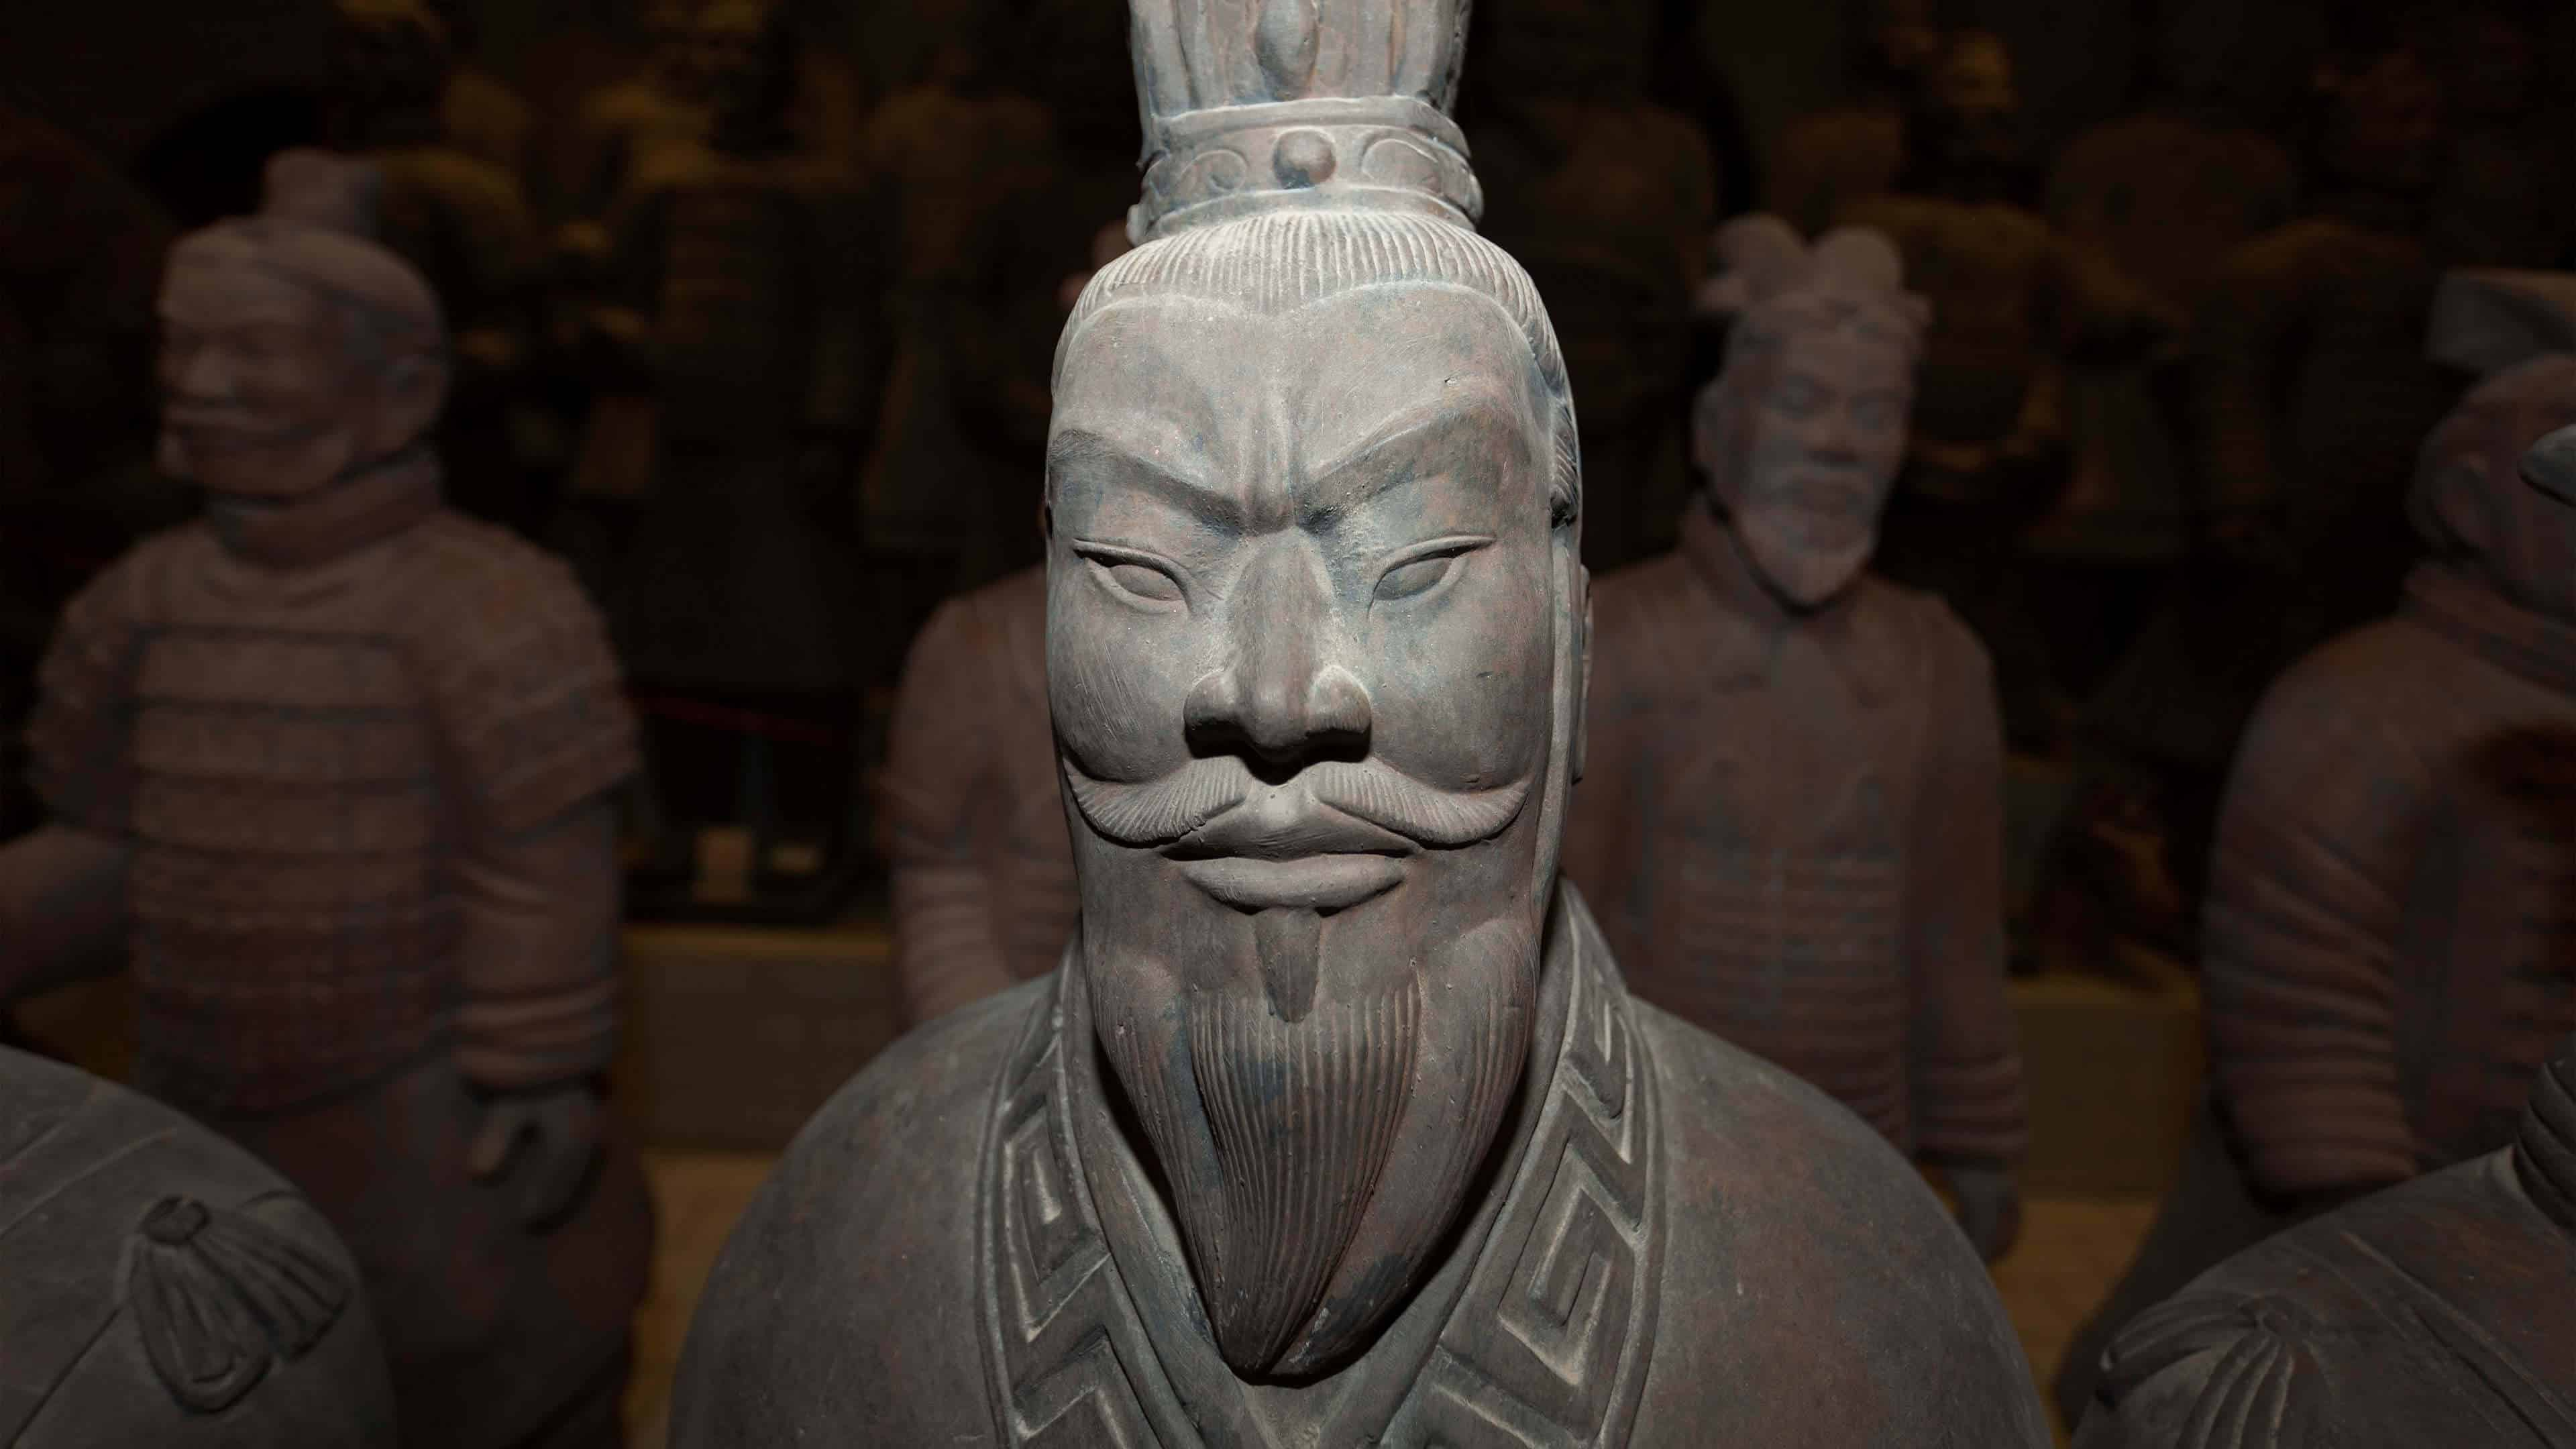 terracotta army statue china uhd 4k wallpaper